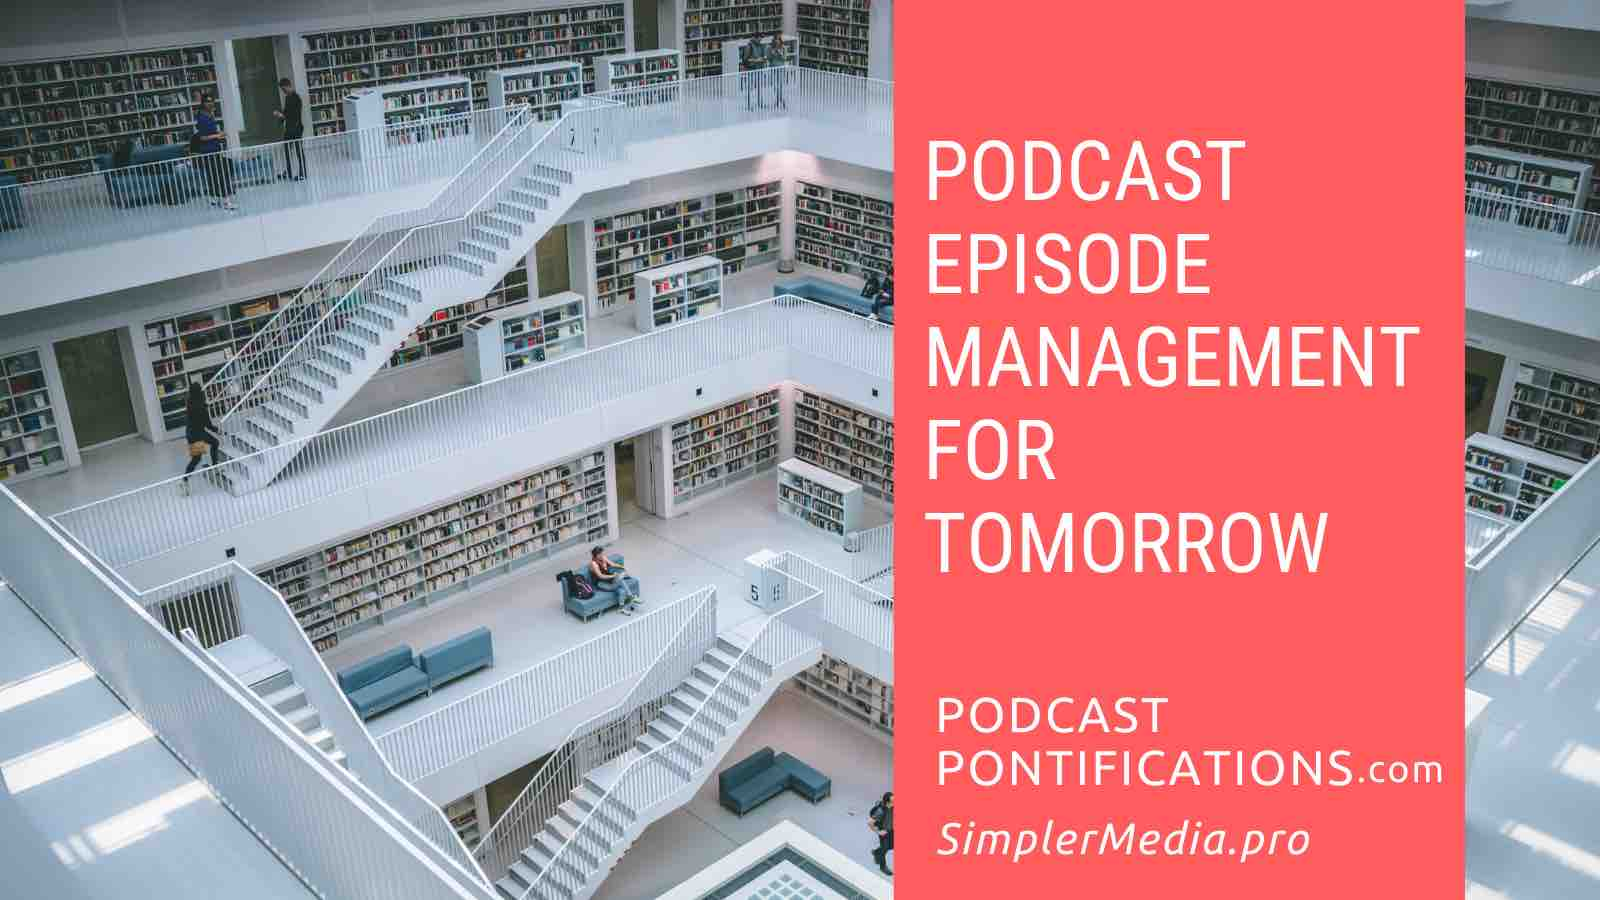 Podcast Episode Management For Tomorrow